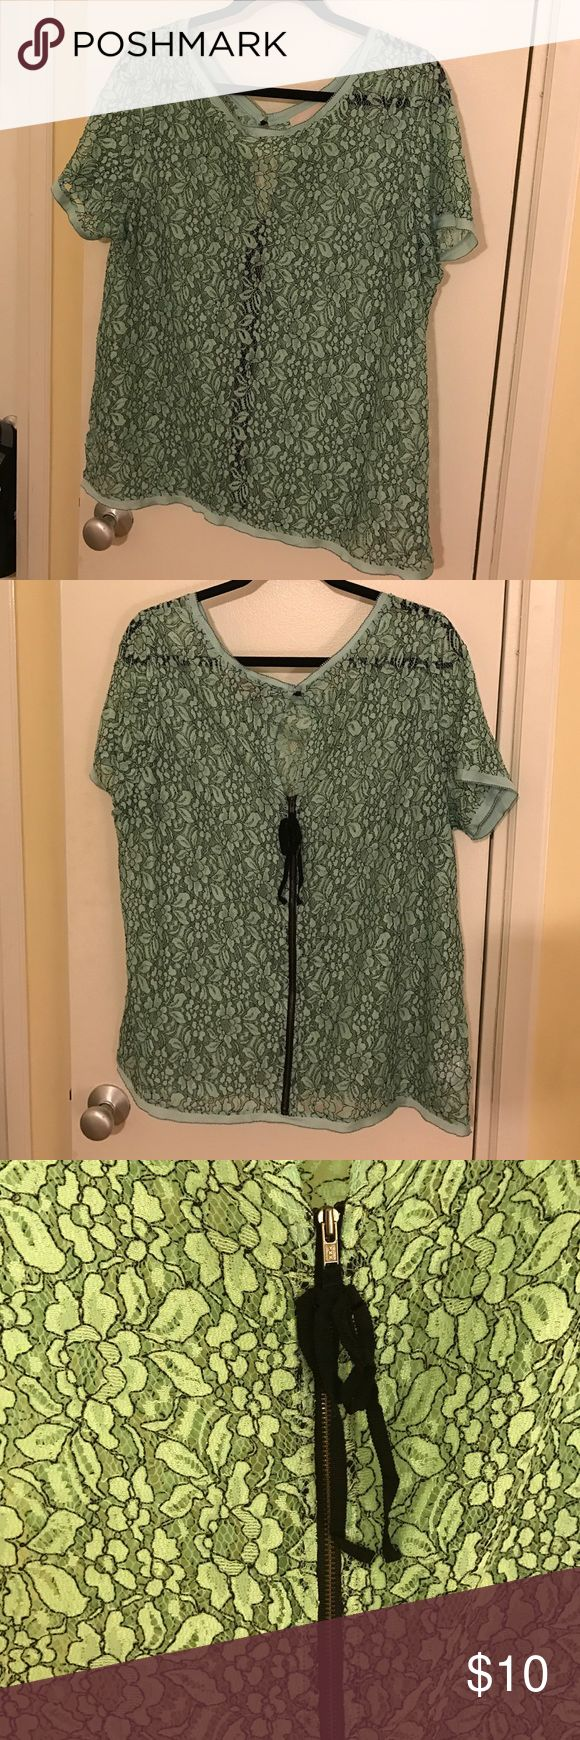 Lace Tee with back details Aqua lace tee with back zipper LOFT Tops Blouses